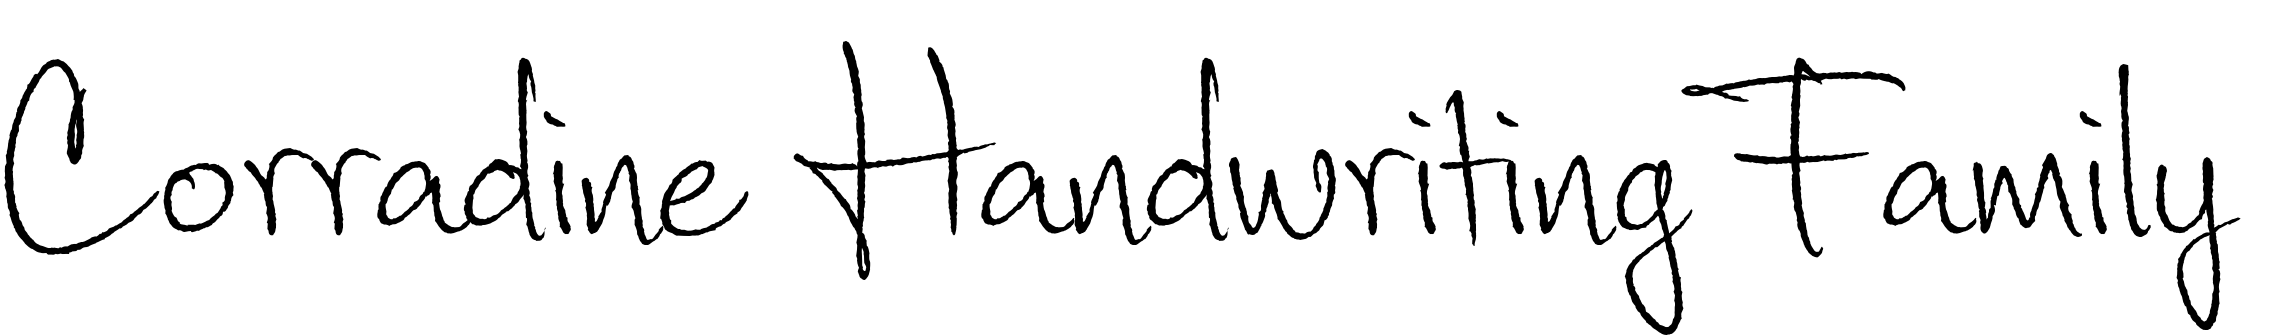 Corradine Handwriting